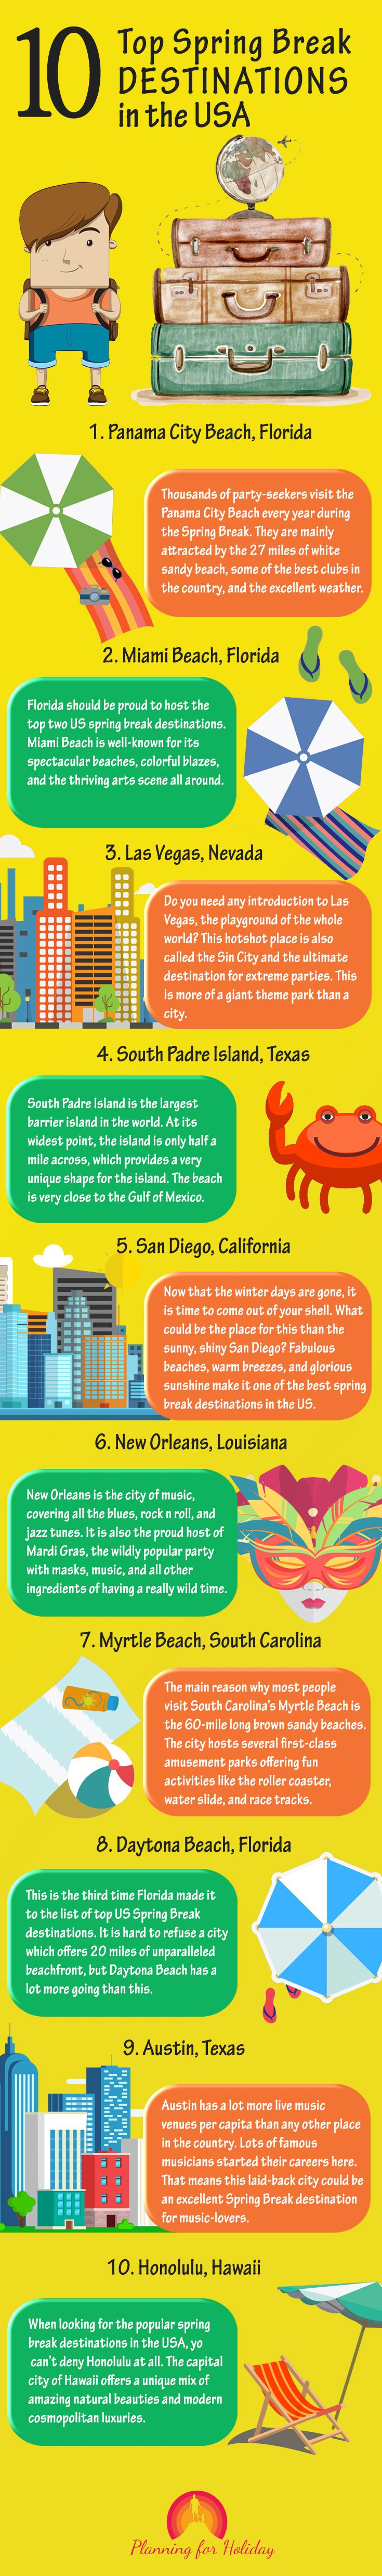 #Planning to visit #USA on #spring #break? I have gone through all the available options and listed the best #February #travel destinations for you. Check out the list of top 10 spring break #destinations in the USA. #Travelling #TravelDestinations